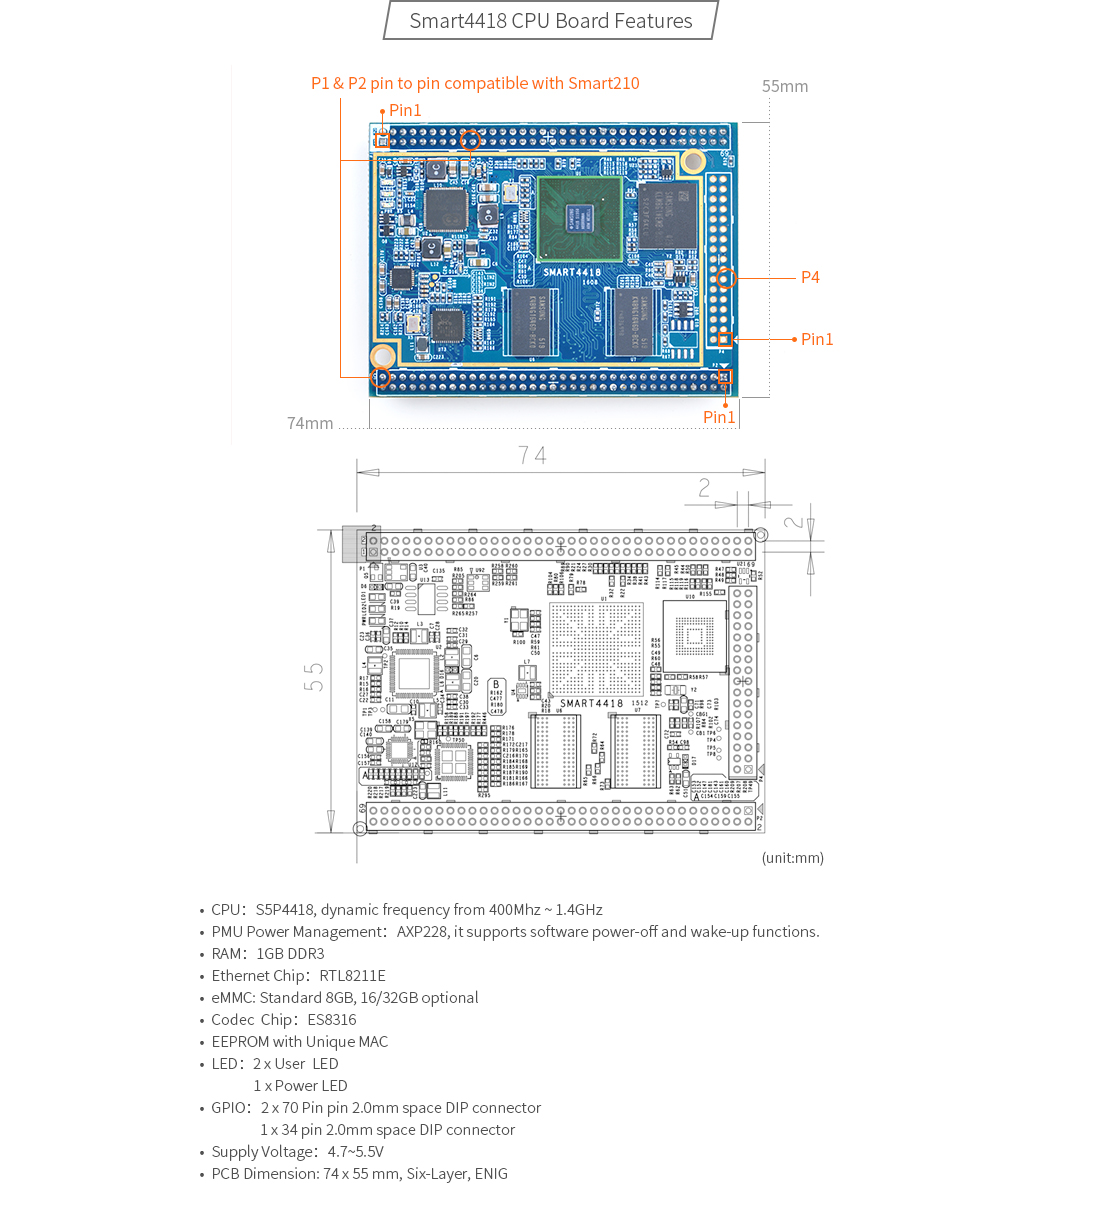 Smart4418sdk X710 Quad Arm Cortex A9 Lcd Sata Power Schematic The Uses A 12v Supply Why You Ask So That It Can Hard Drive Or Ssd On Connector